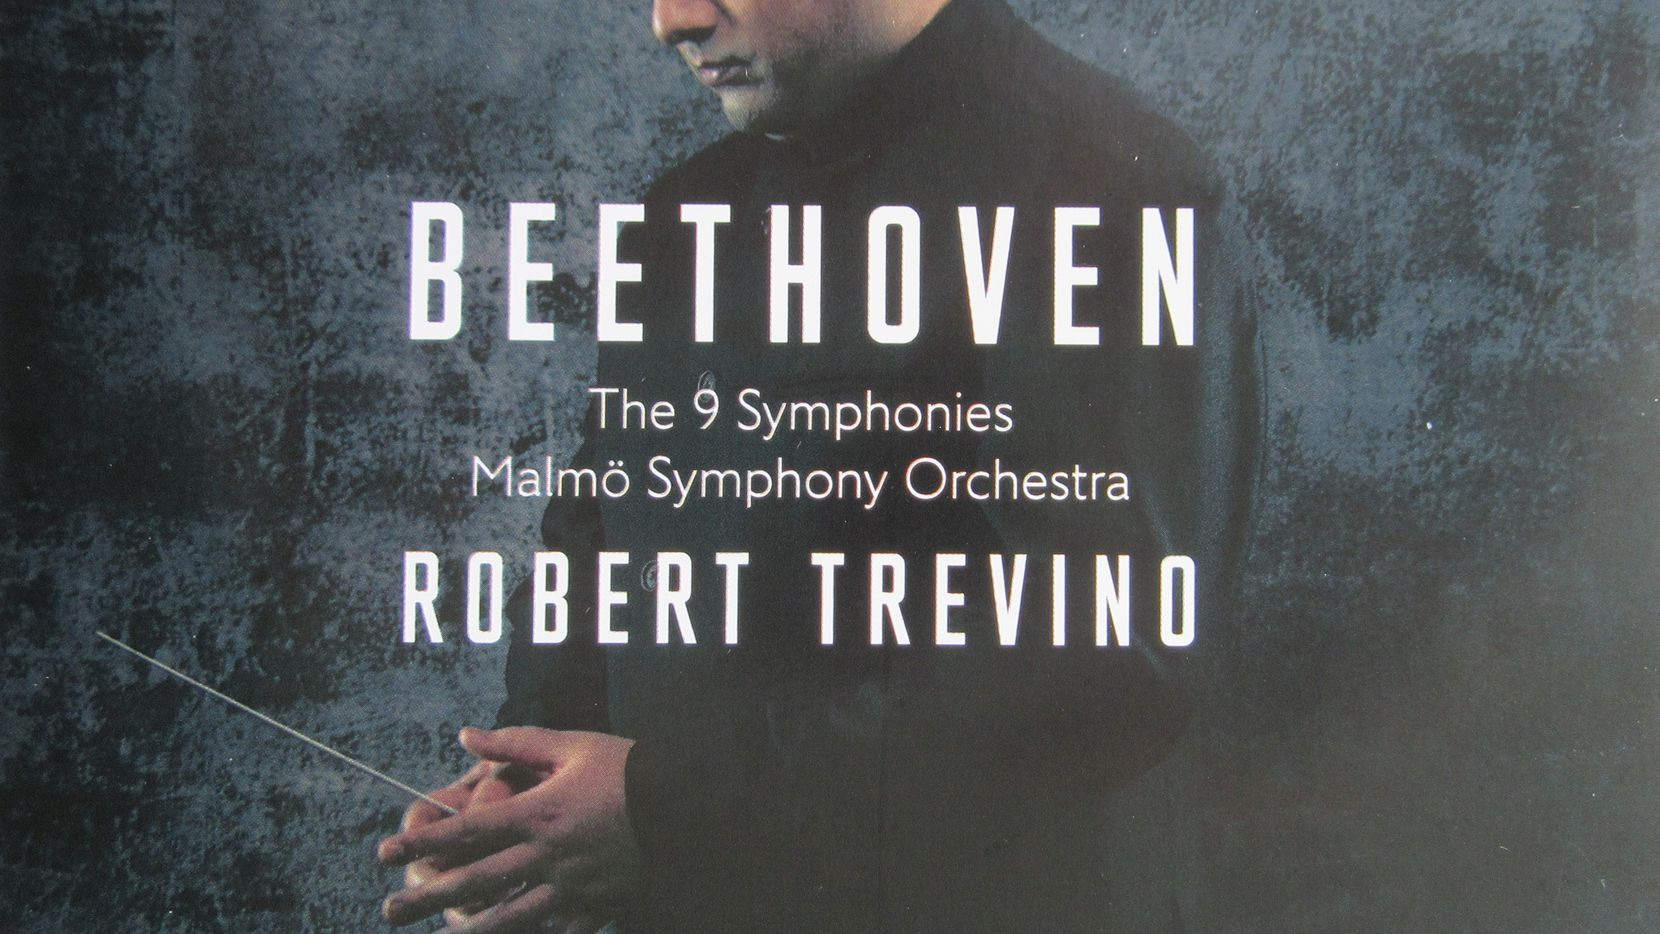 Robert Trevino, shown on the cover of his CD conducting the Malmo Symphony Orchestra.